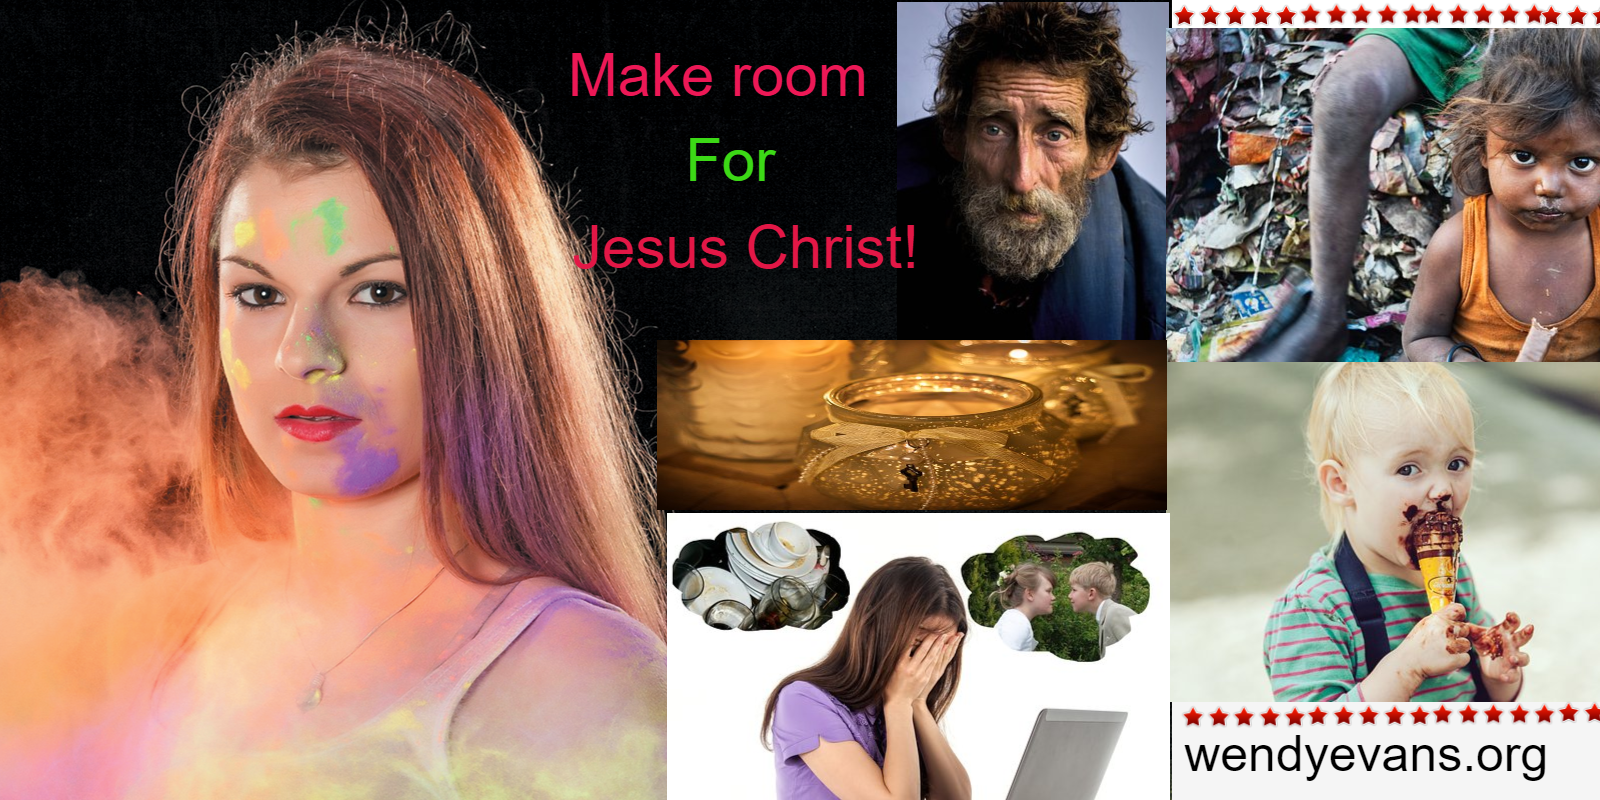 Make Room For Jesus!